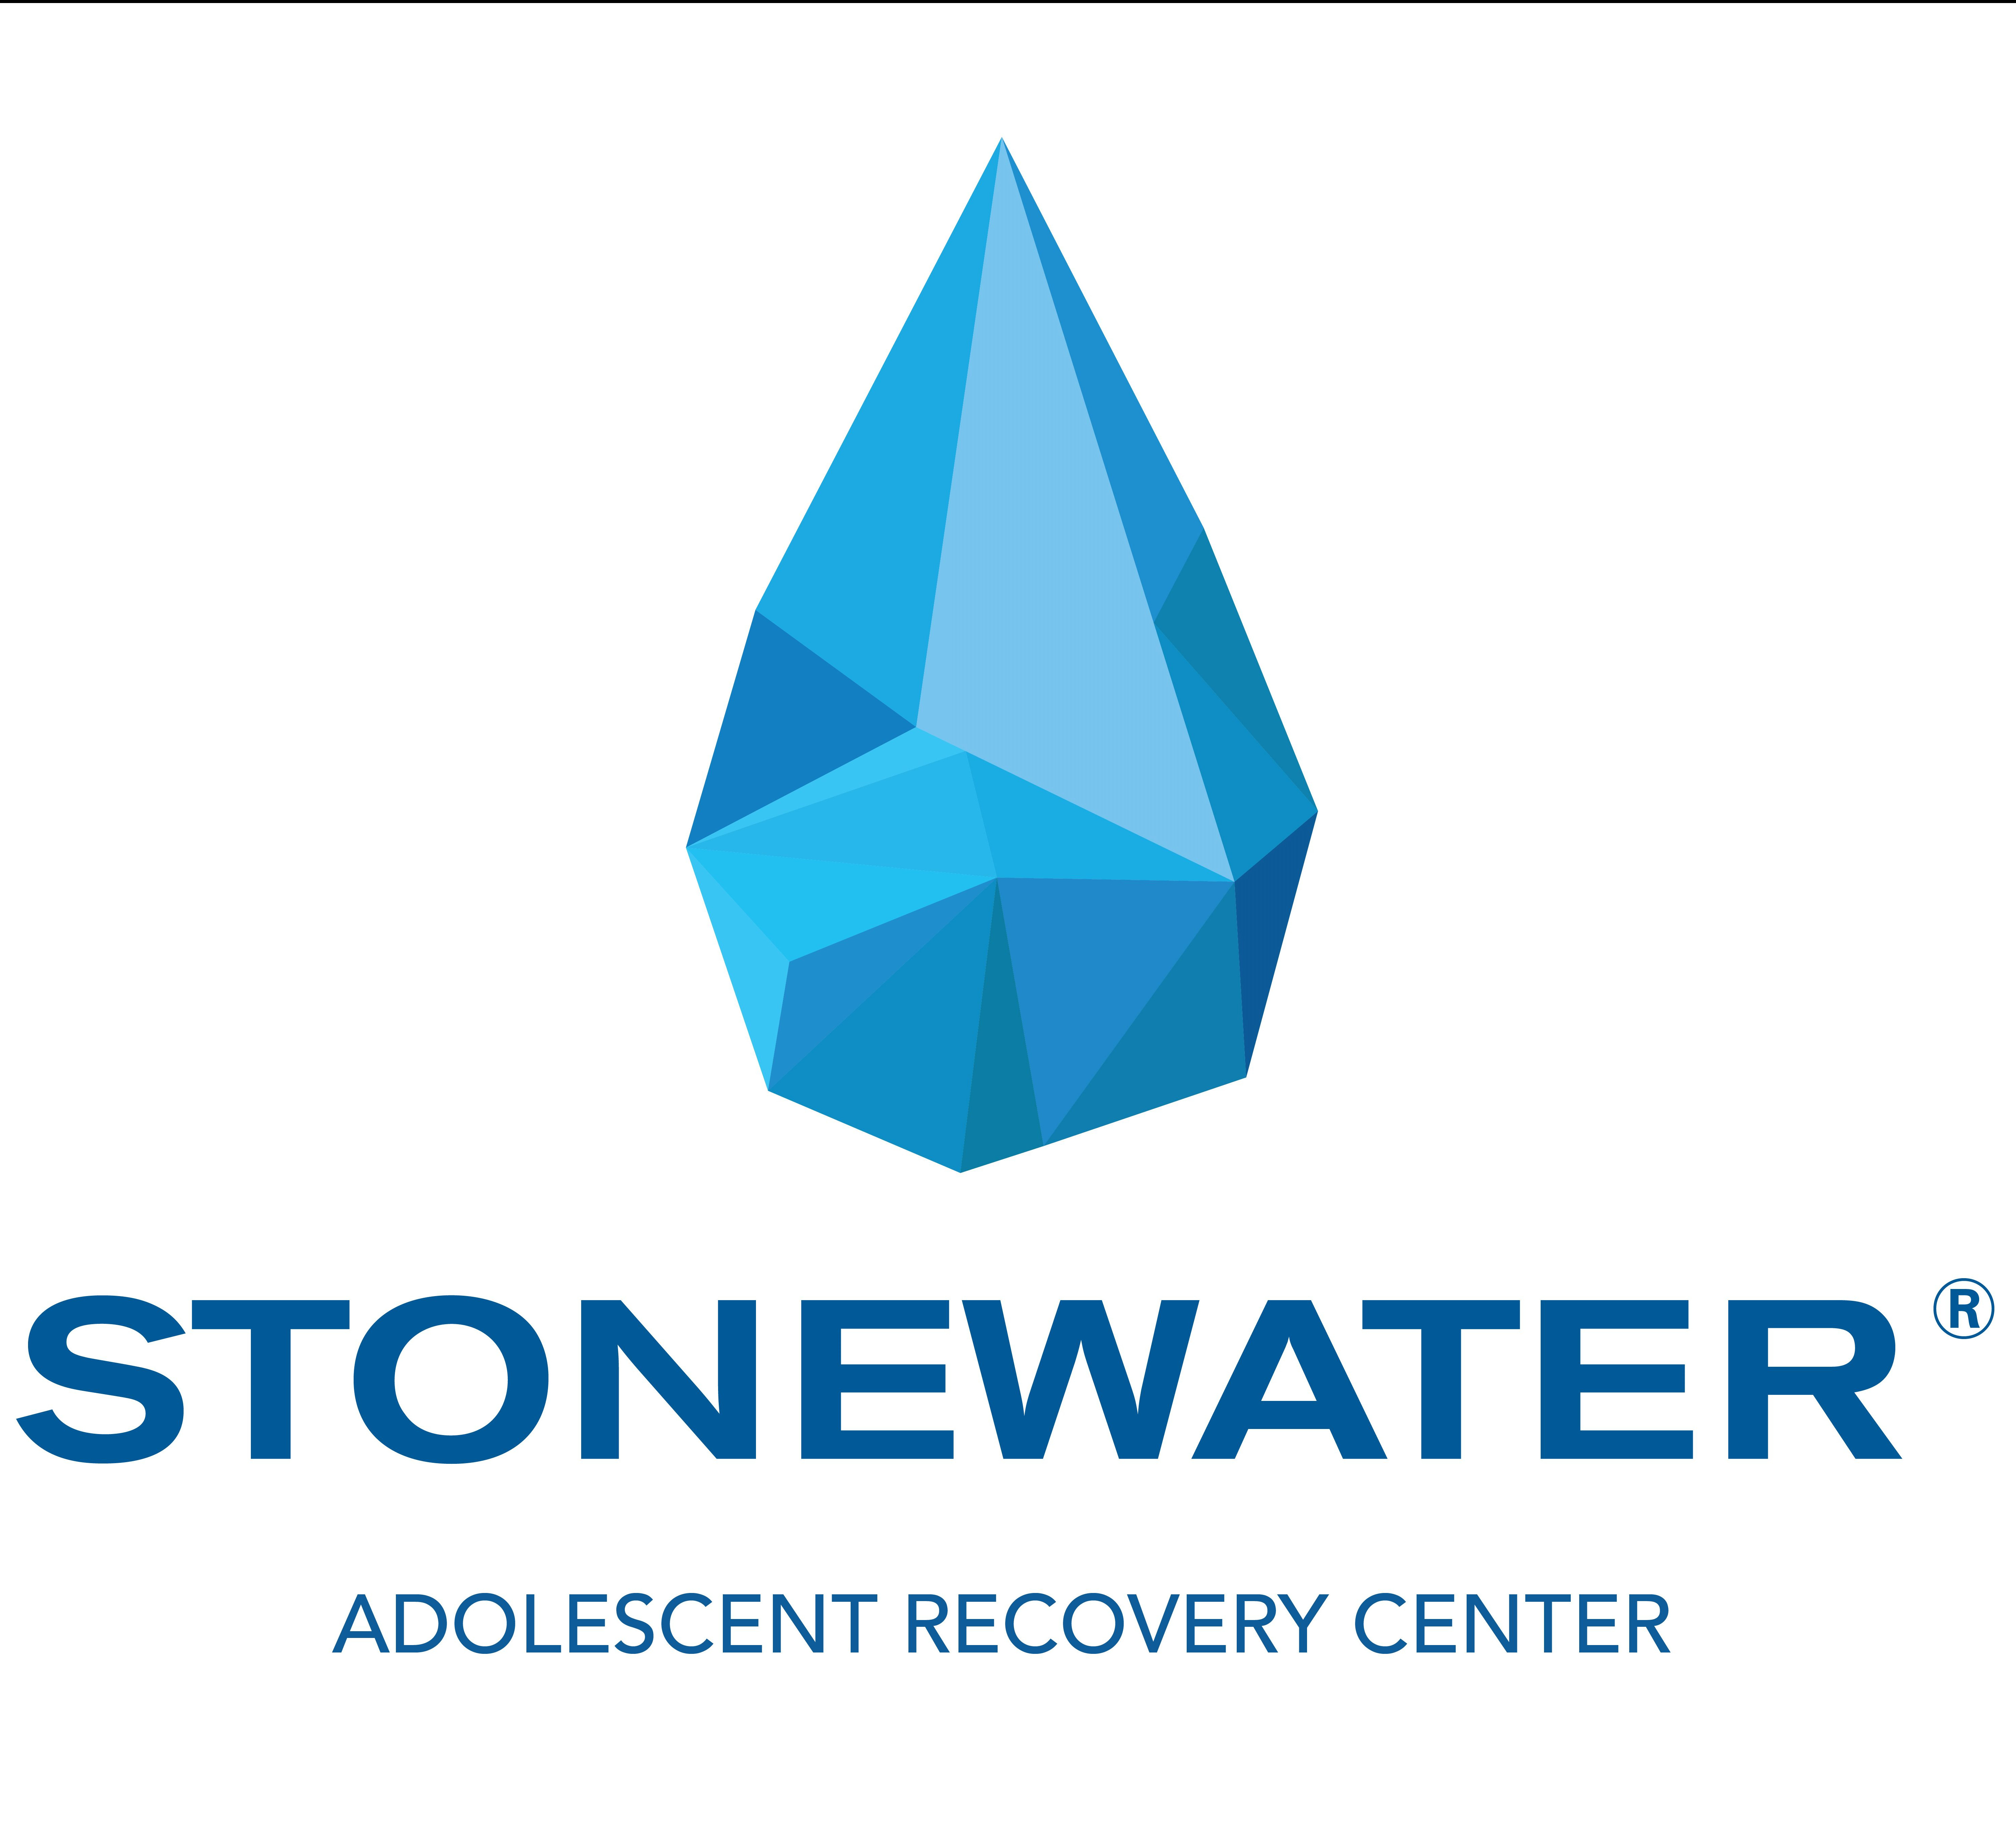 Stonewater Adolescent Recovery Center